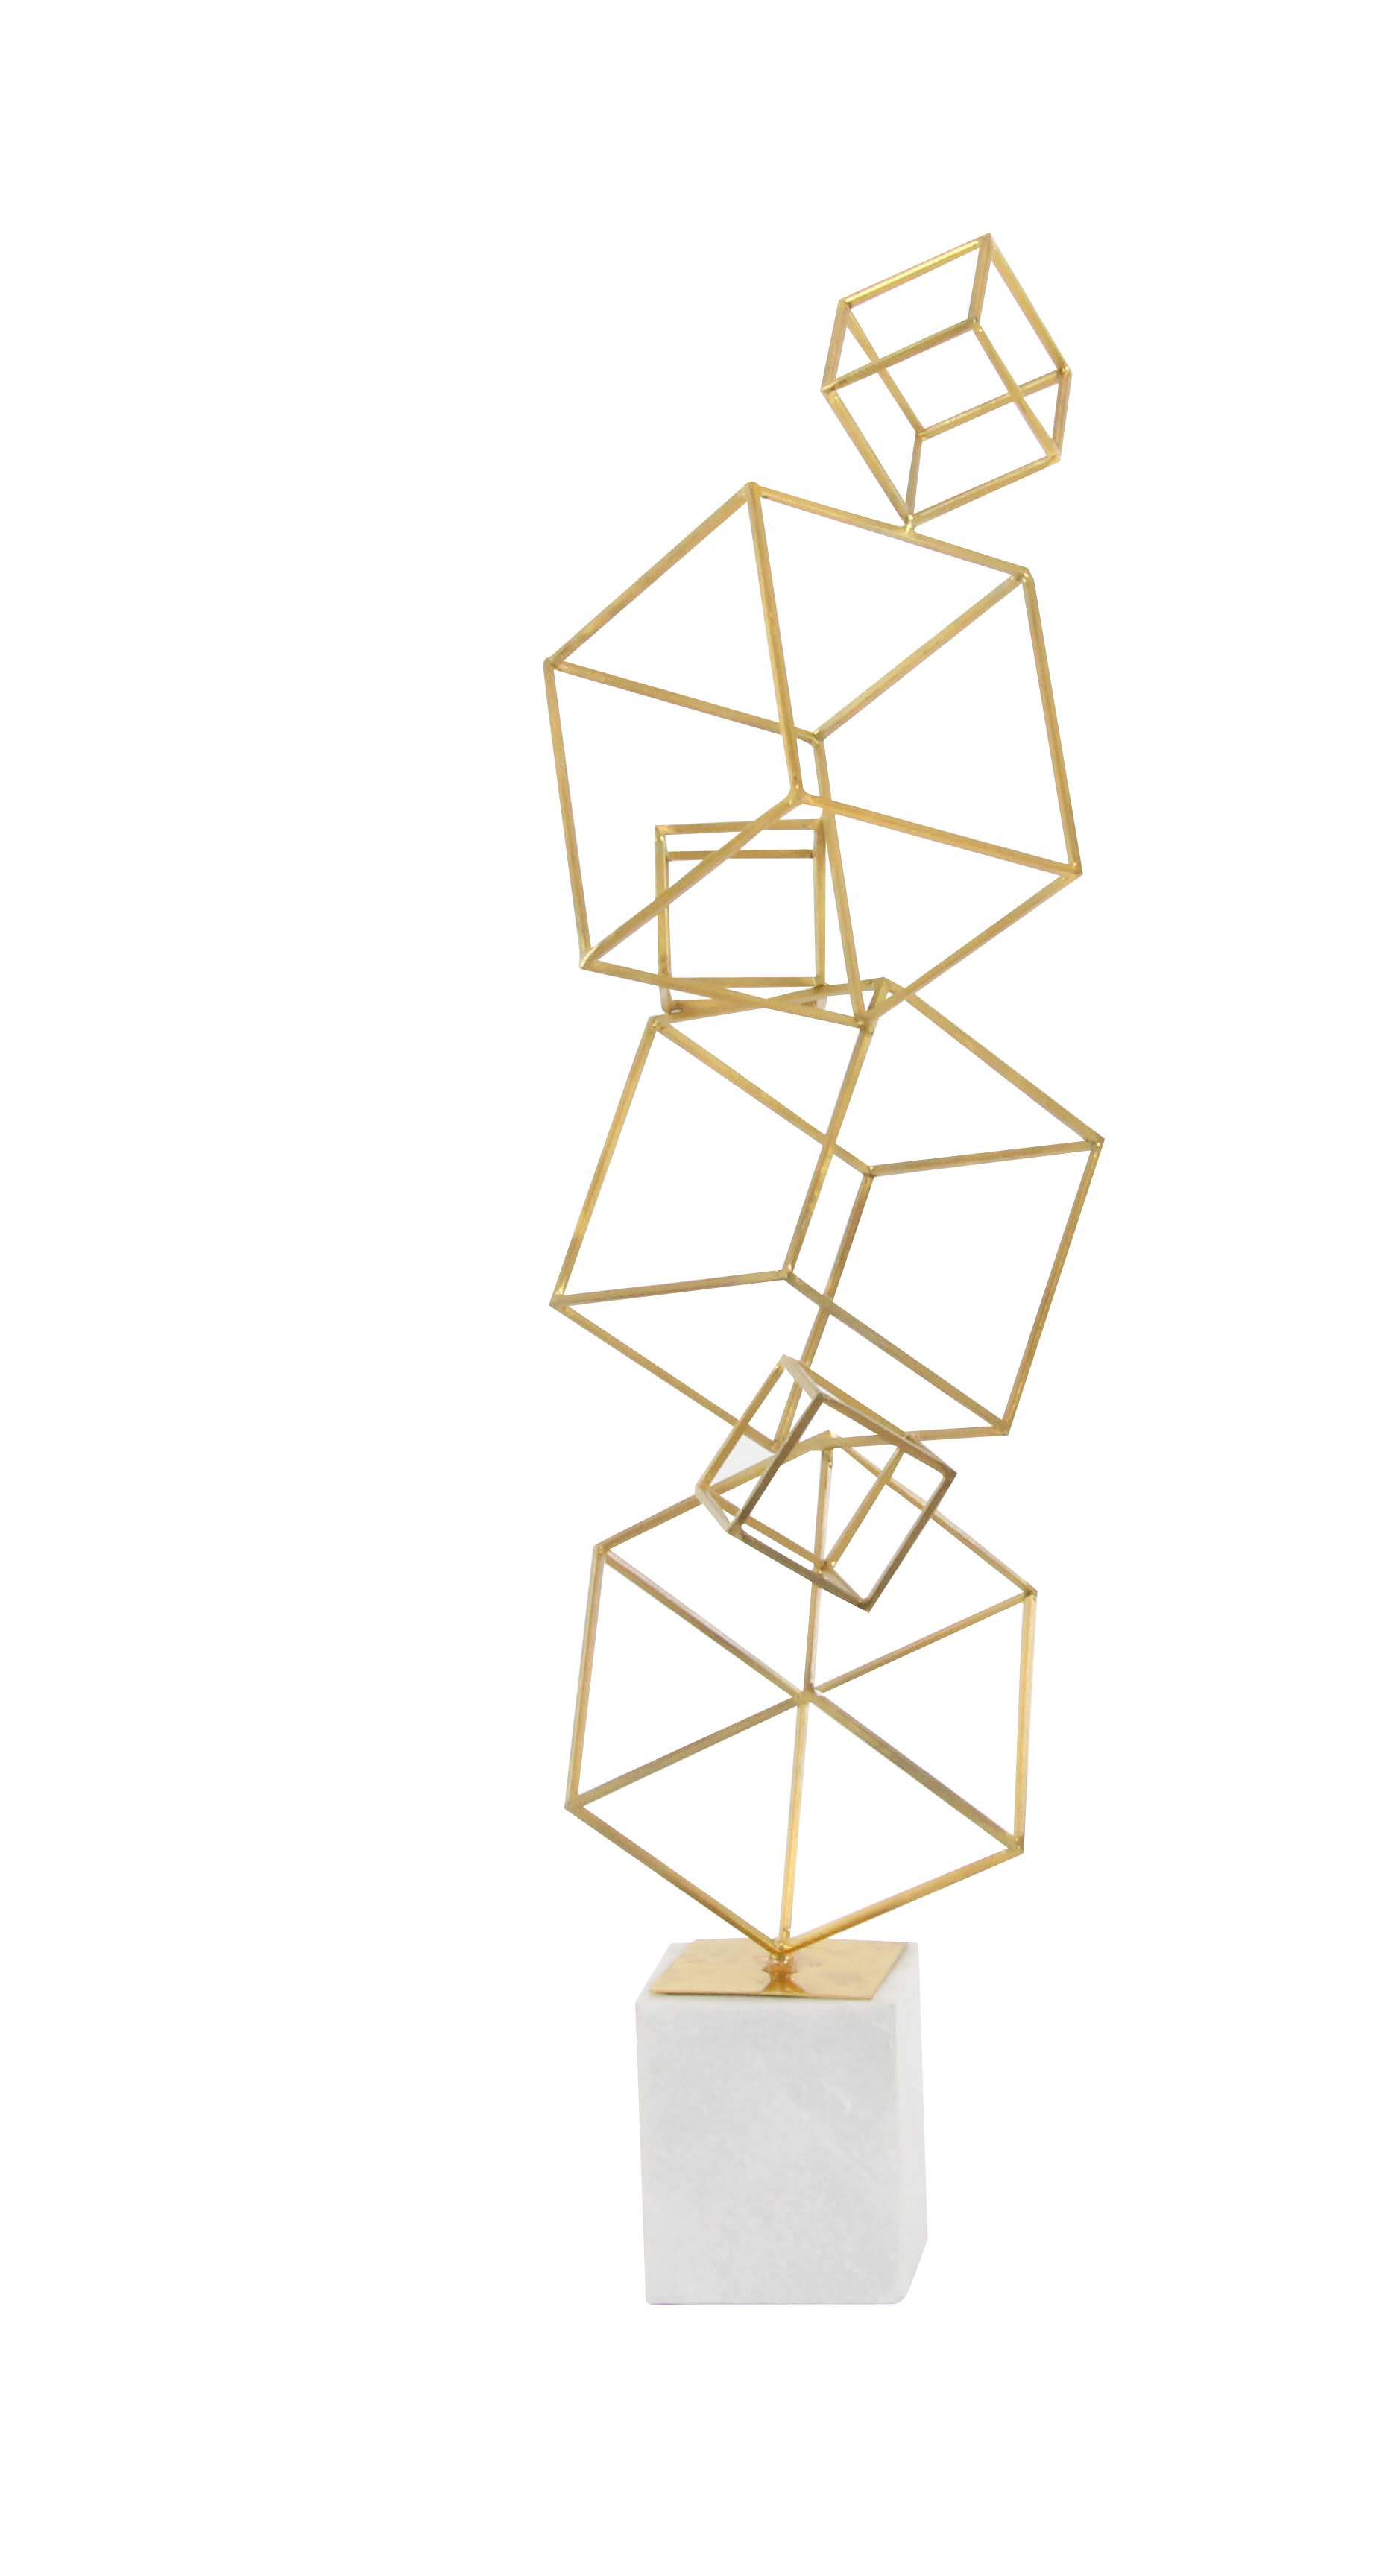 Decmode Contemporary 36 X 16 Inch Iron and Marble Cube Tower Sculpture, Gold by DecMode